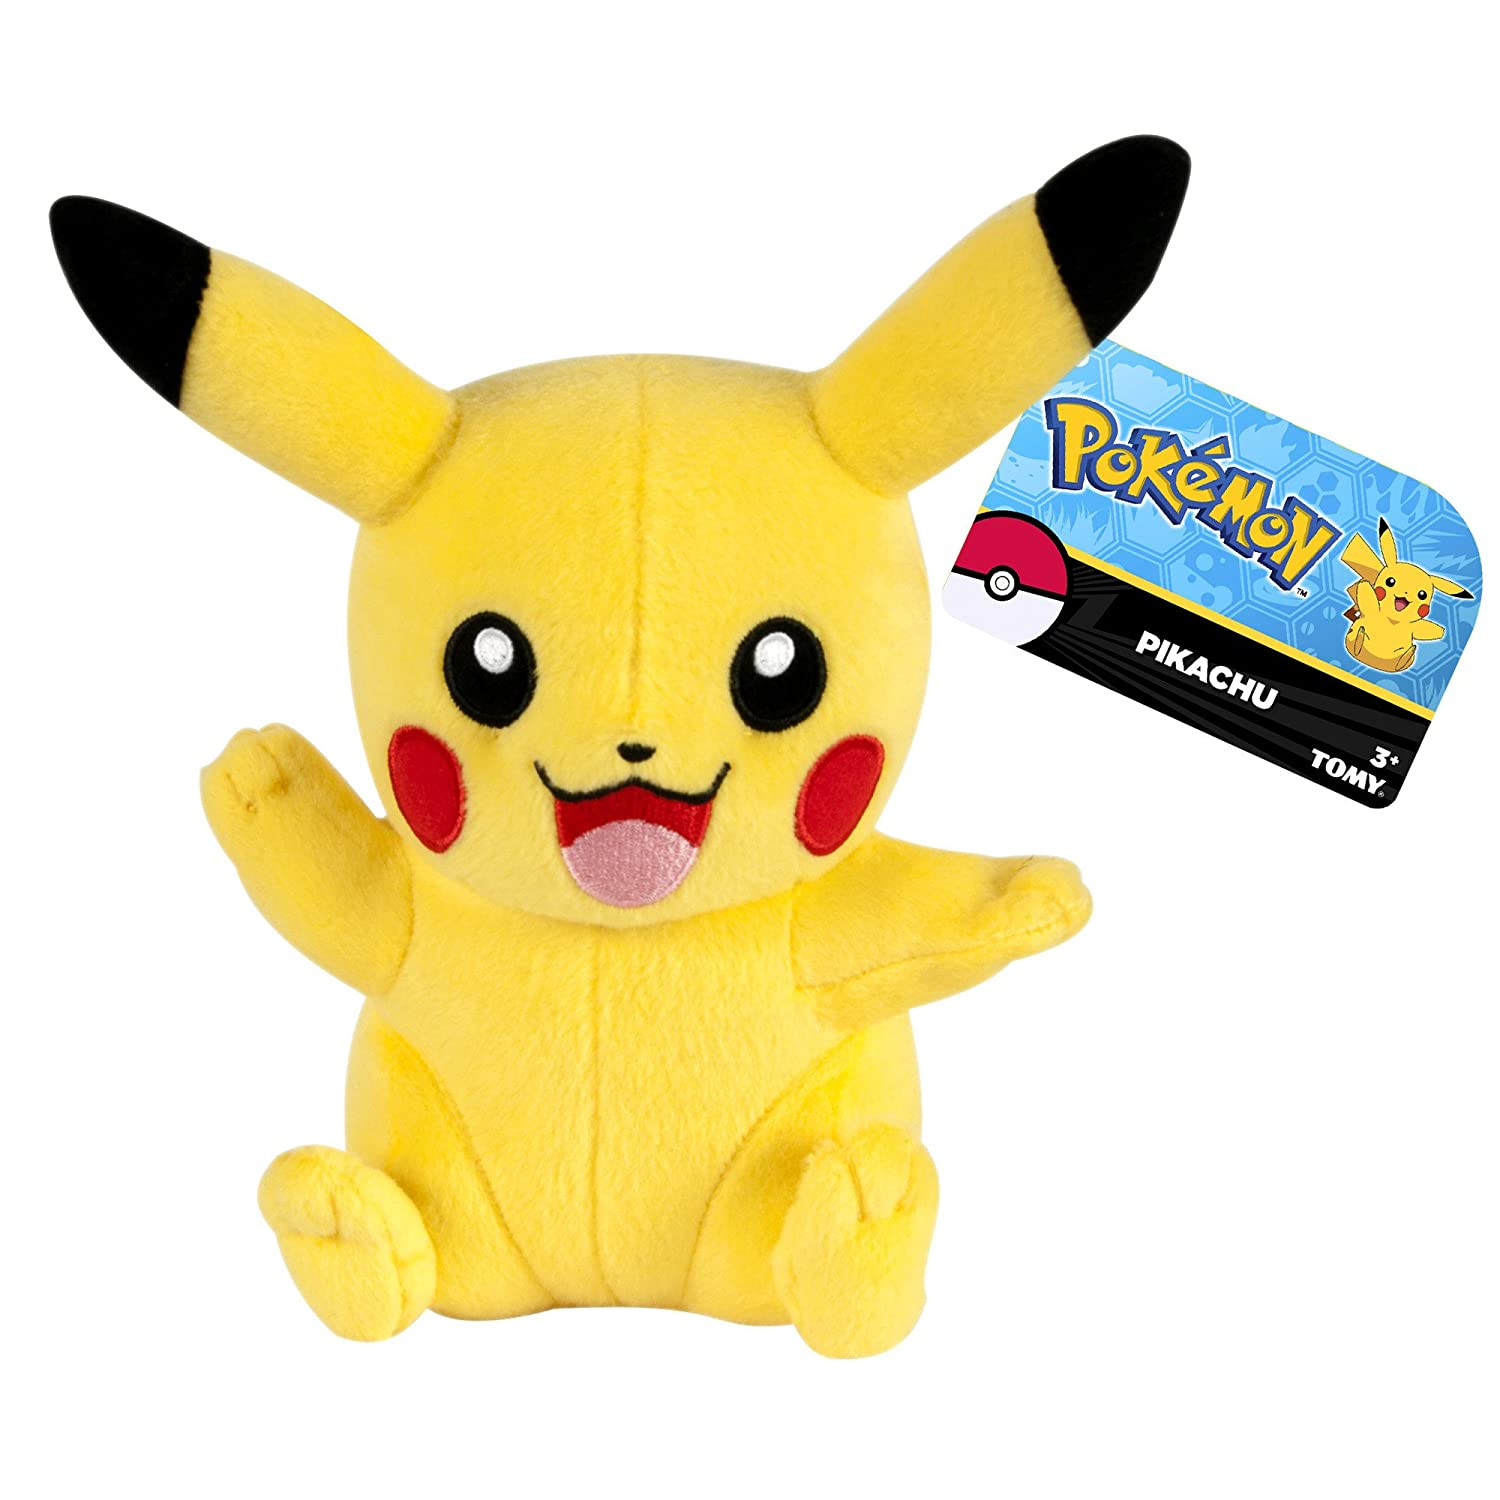 Amazon.com: Tomy - Peluche Pokemon - Pikachu 18cm - 0053941188962: Toys & Games